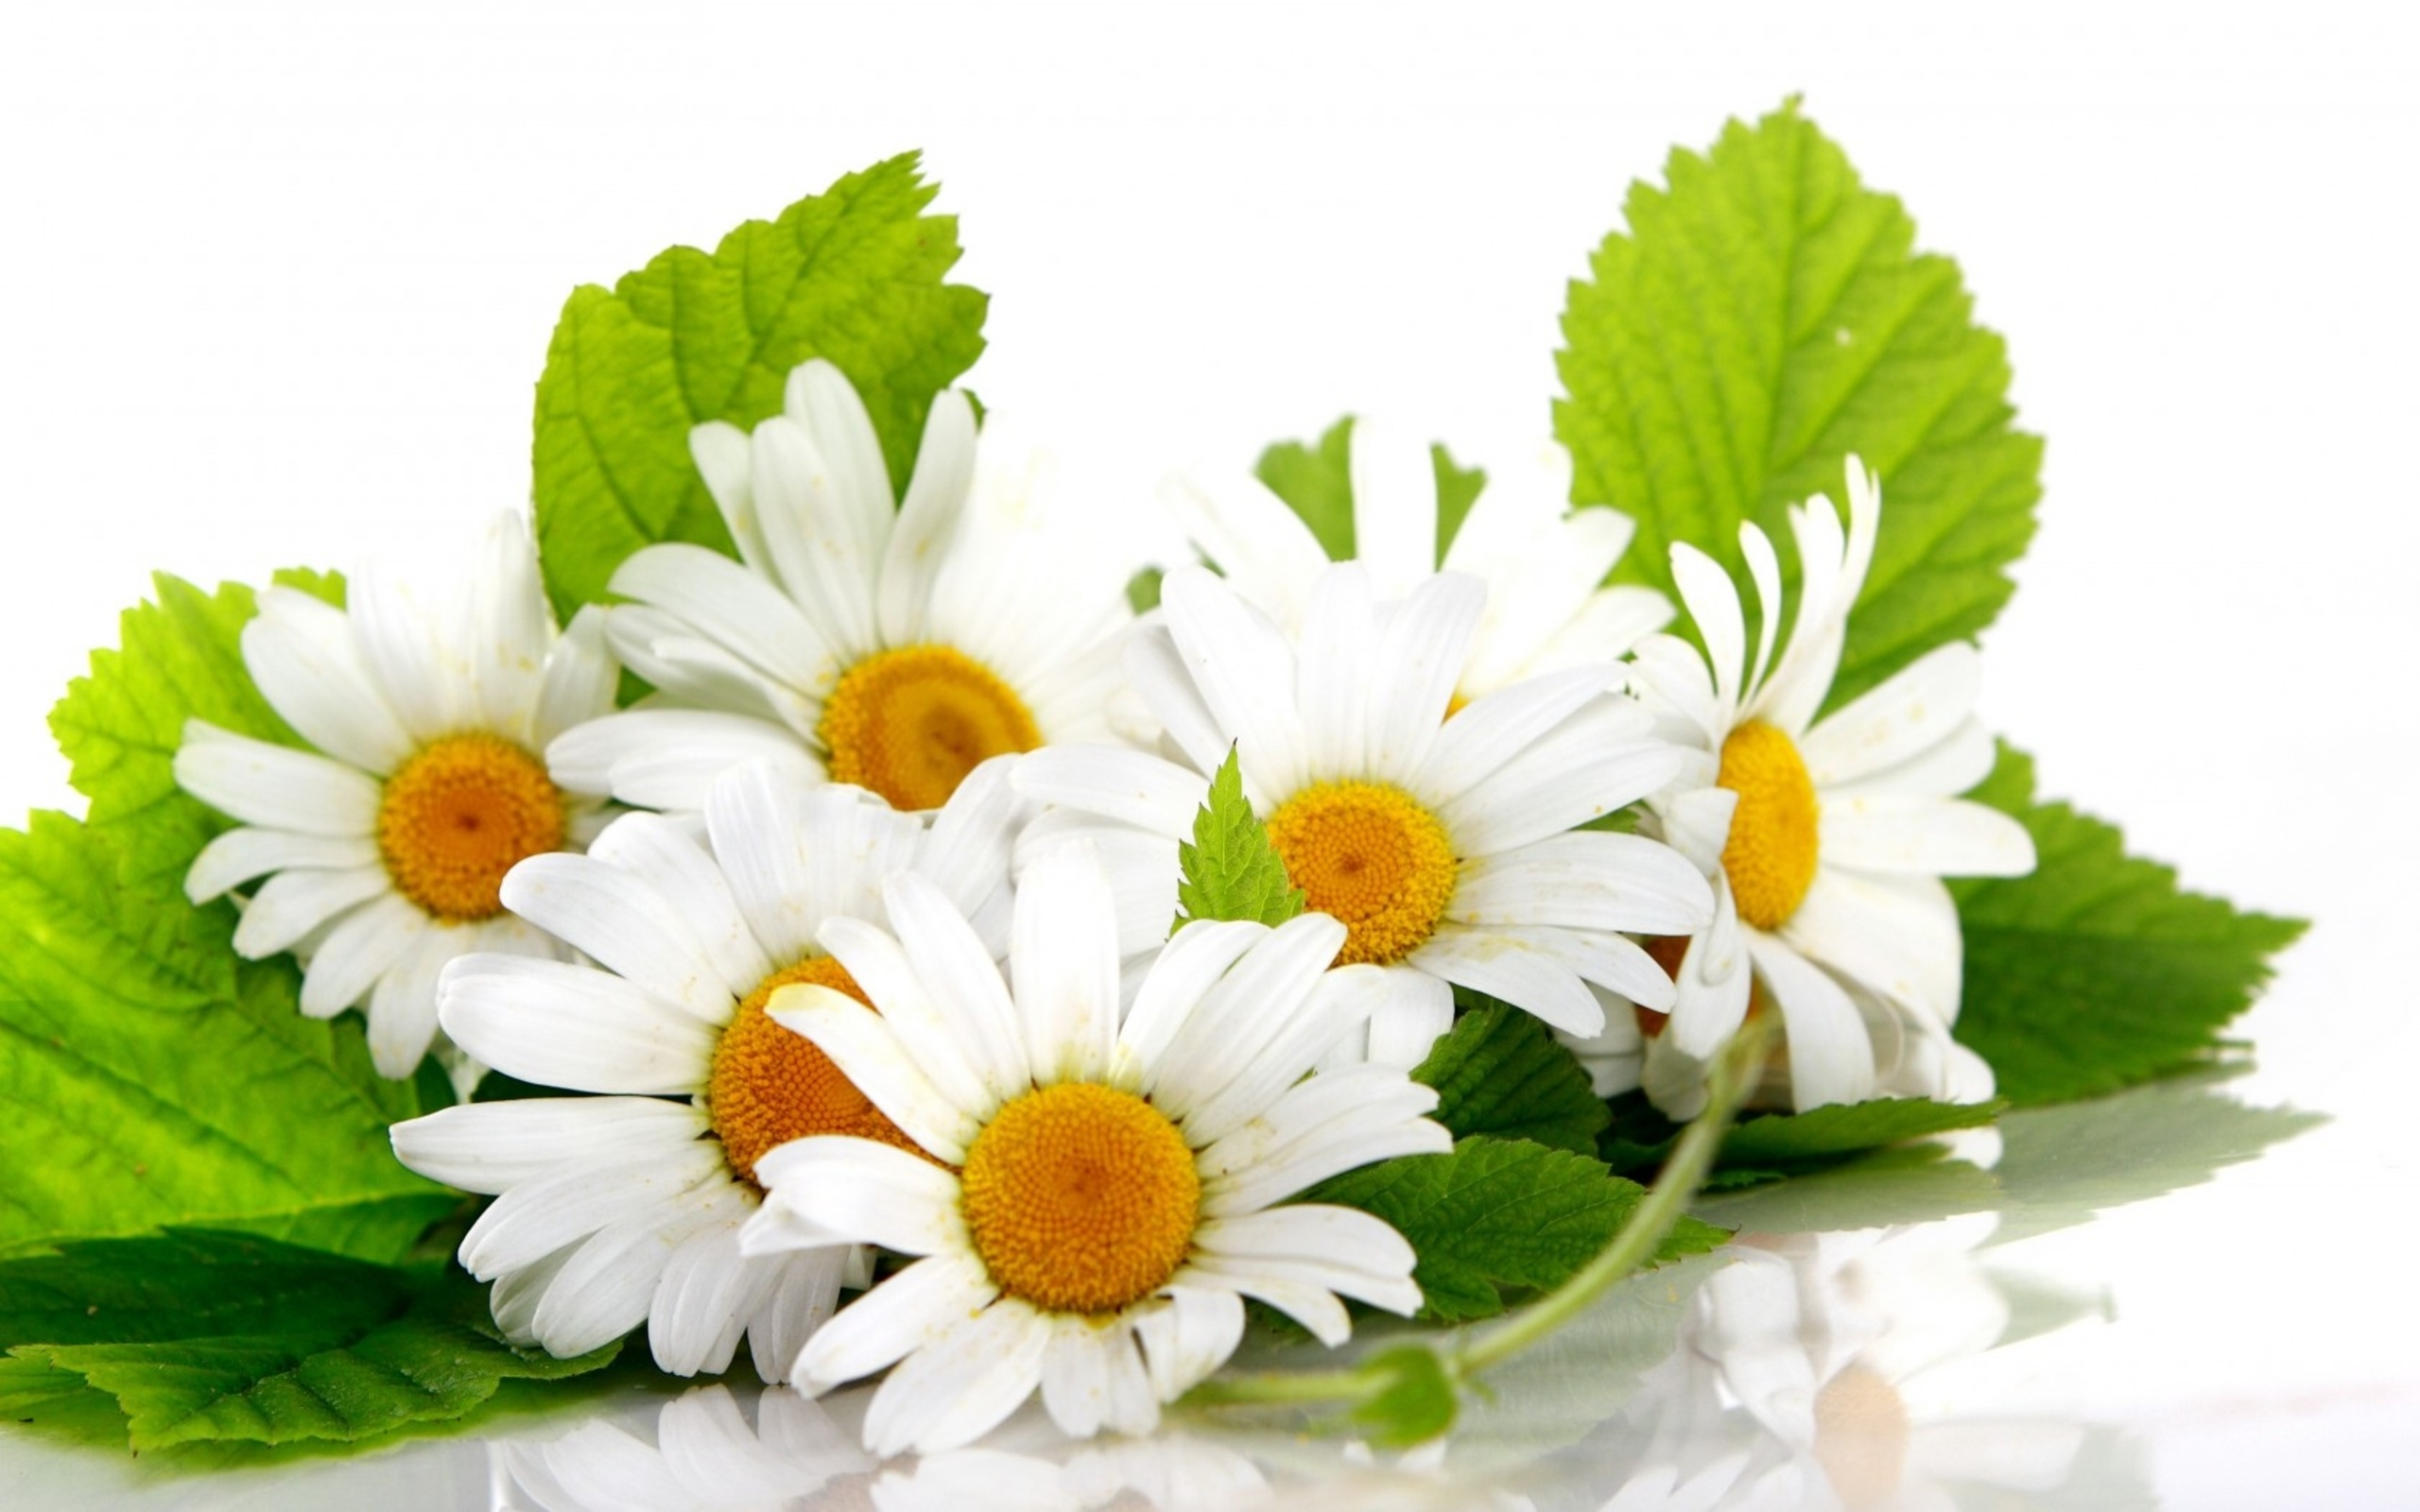 402 Daisy Hd Wallpapers Background Images Wallpaper Abyss